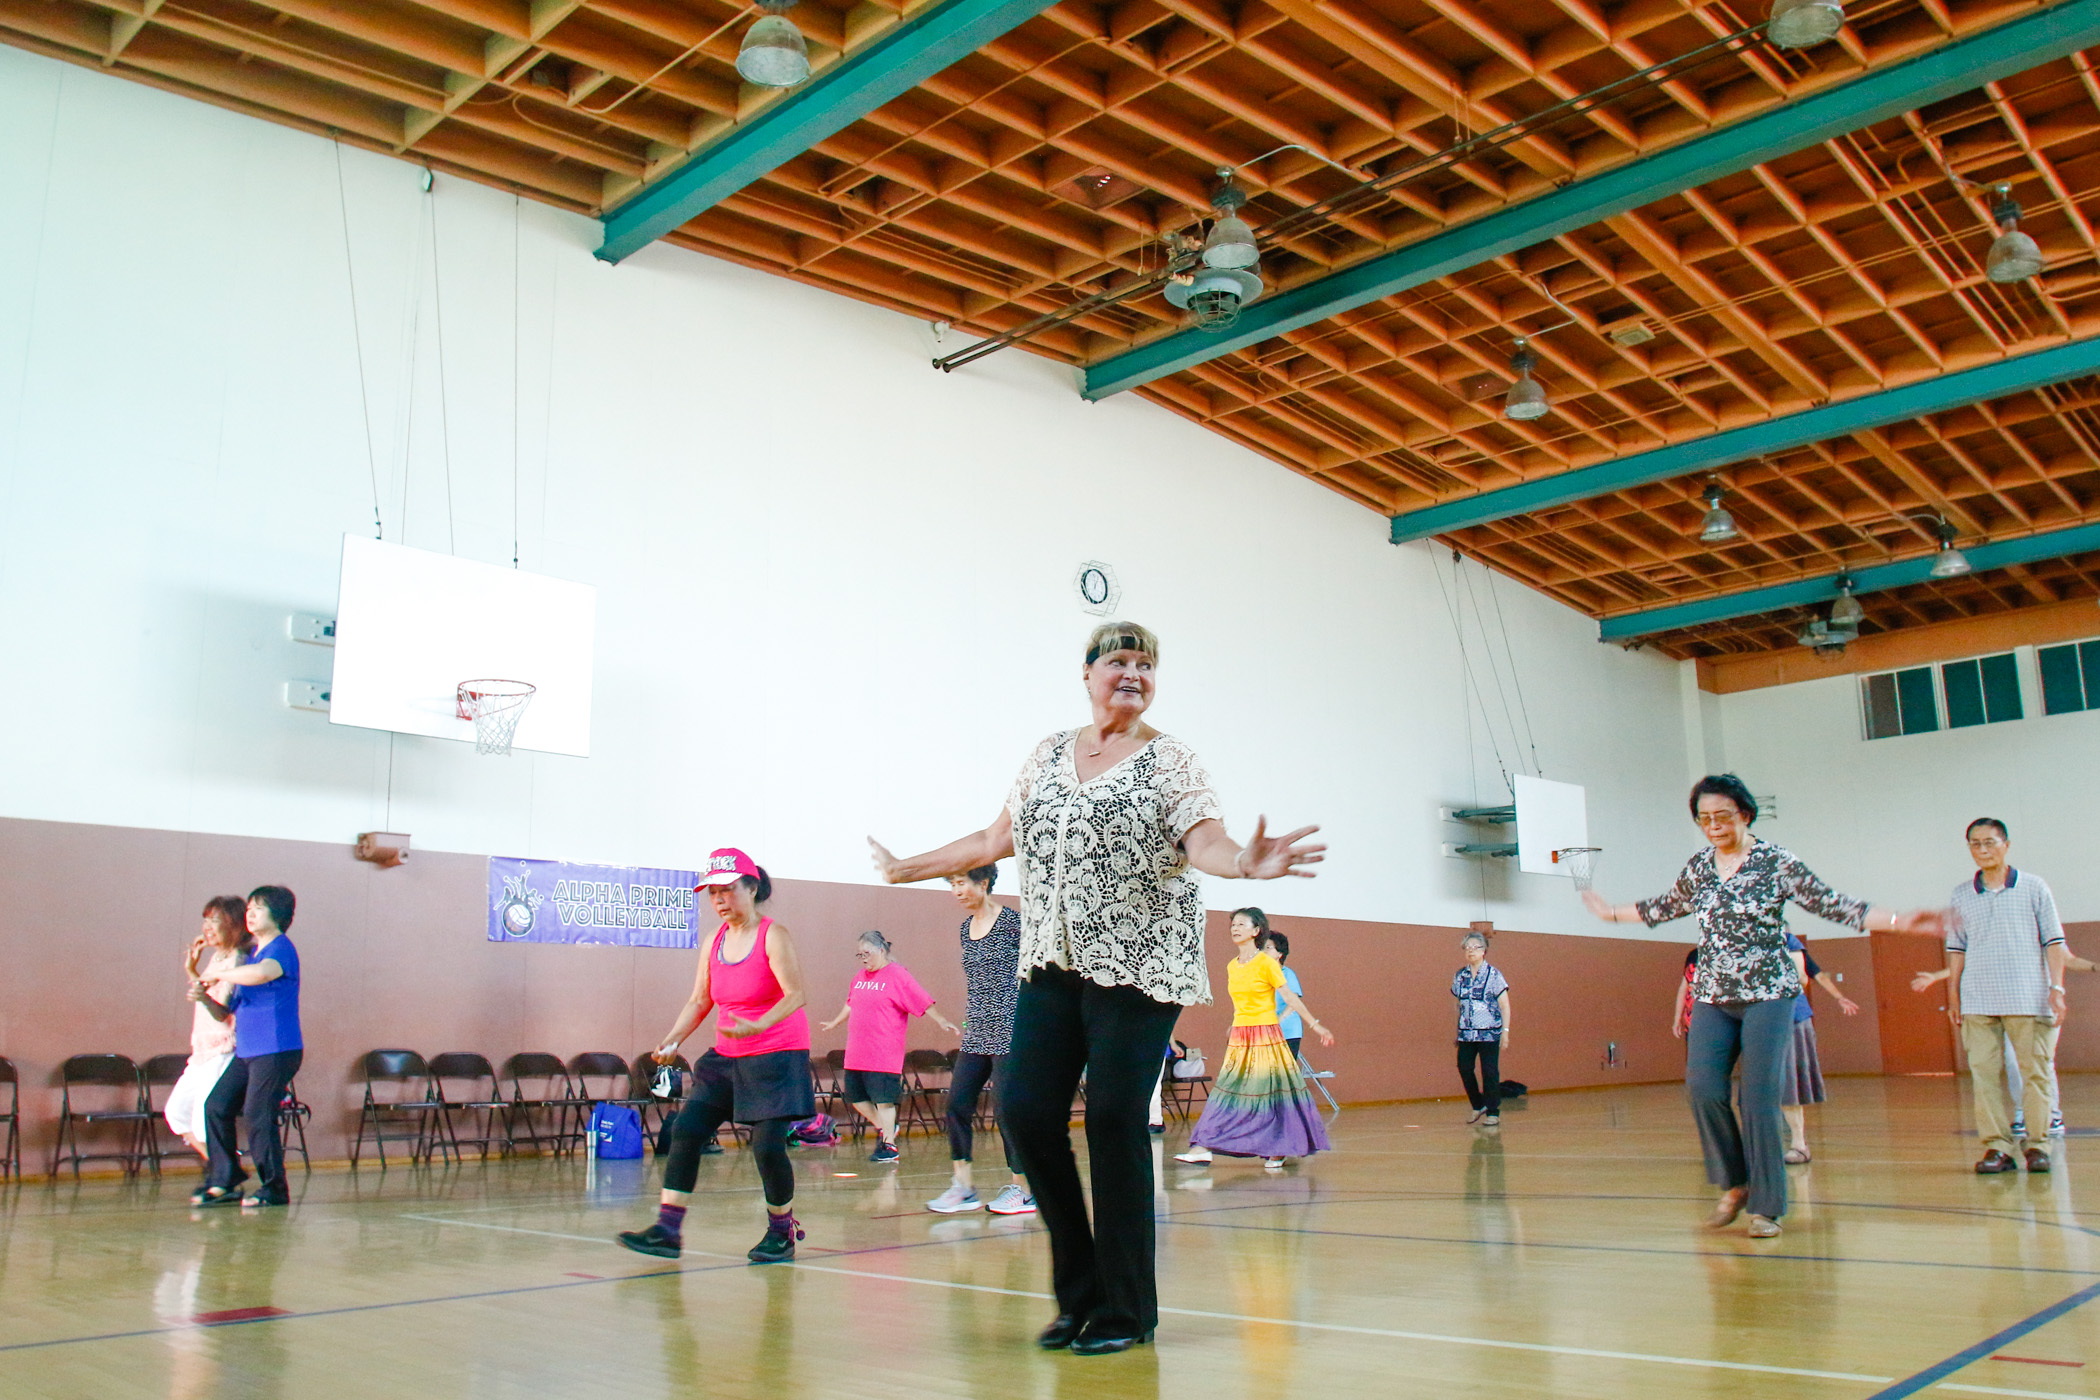 Lori Rock, center, leads line dancing lessons to seniors during Senior Friendship Day - a free,weekly senior-focused program that offersclasses as well as lectures and social activities. Line dancing and lunch provided by La Comida.